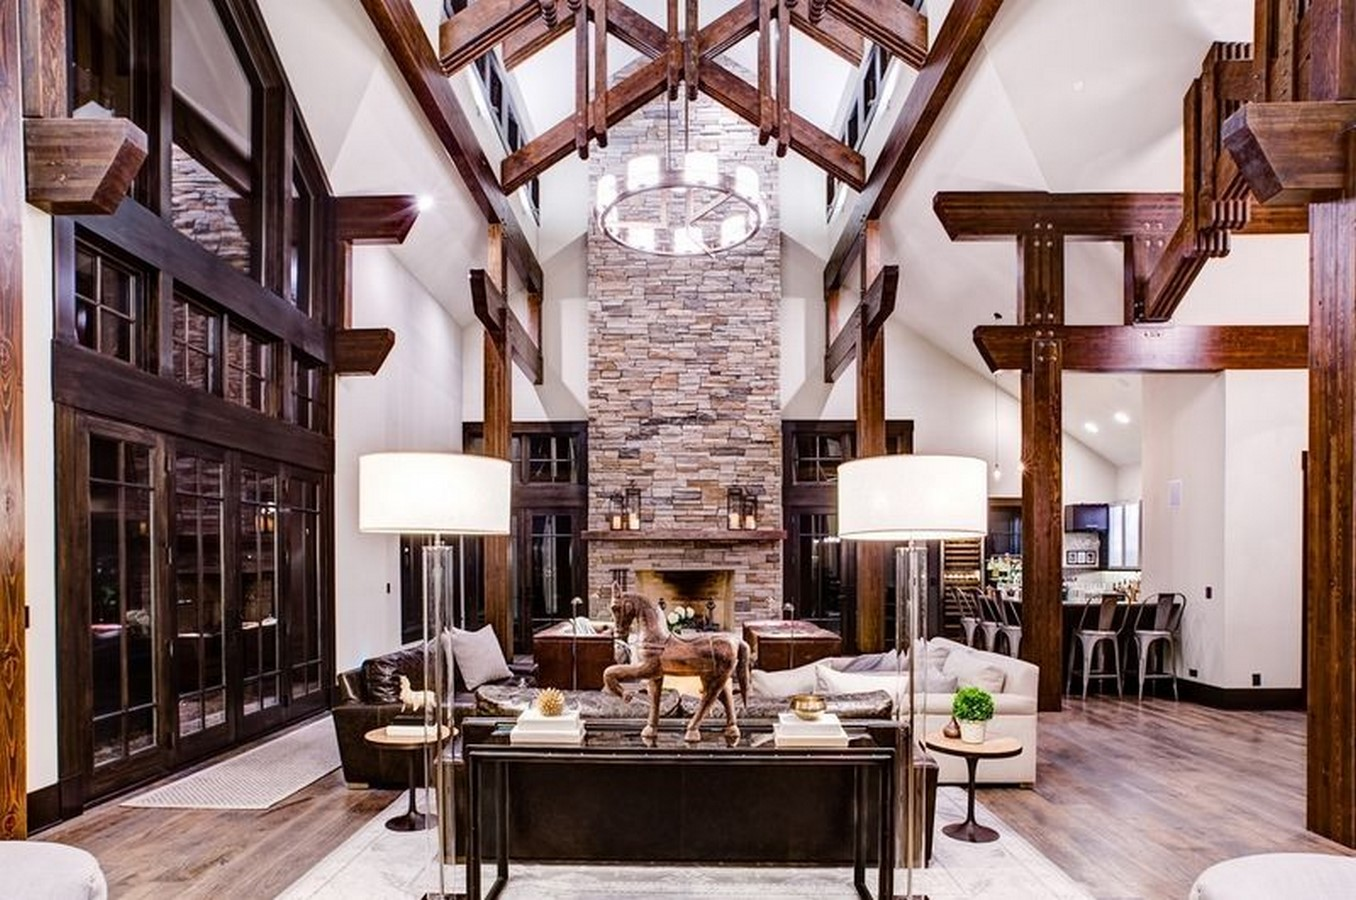 30 Examples of Rustic interiors for living rooms - Sheet21